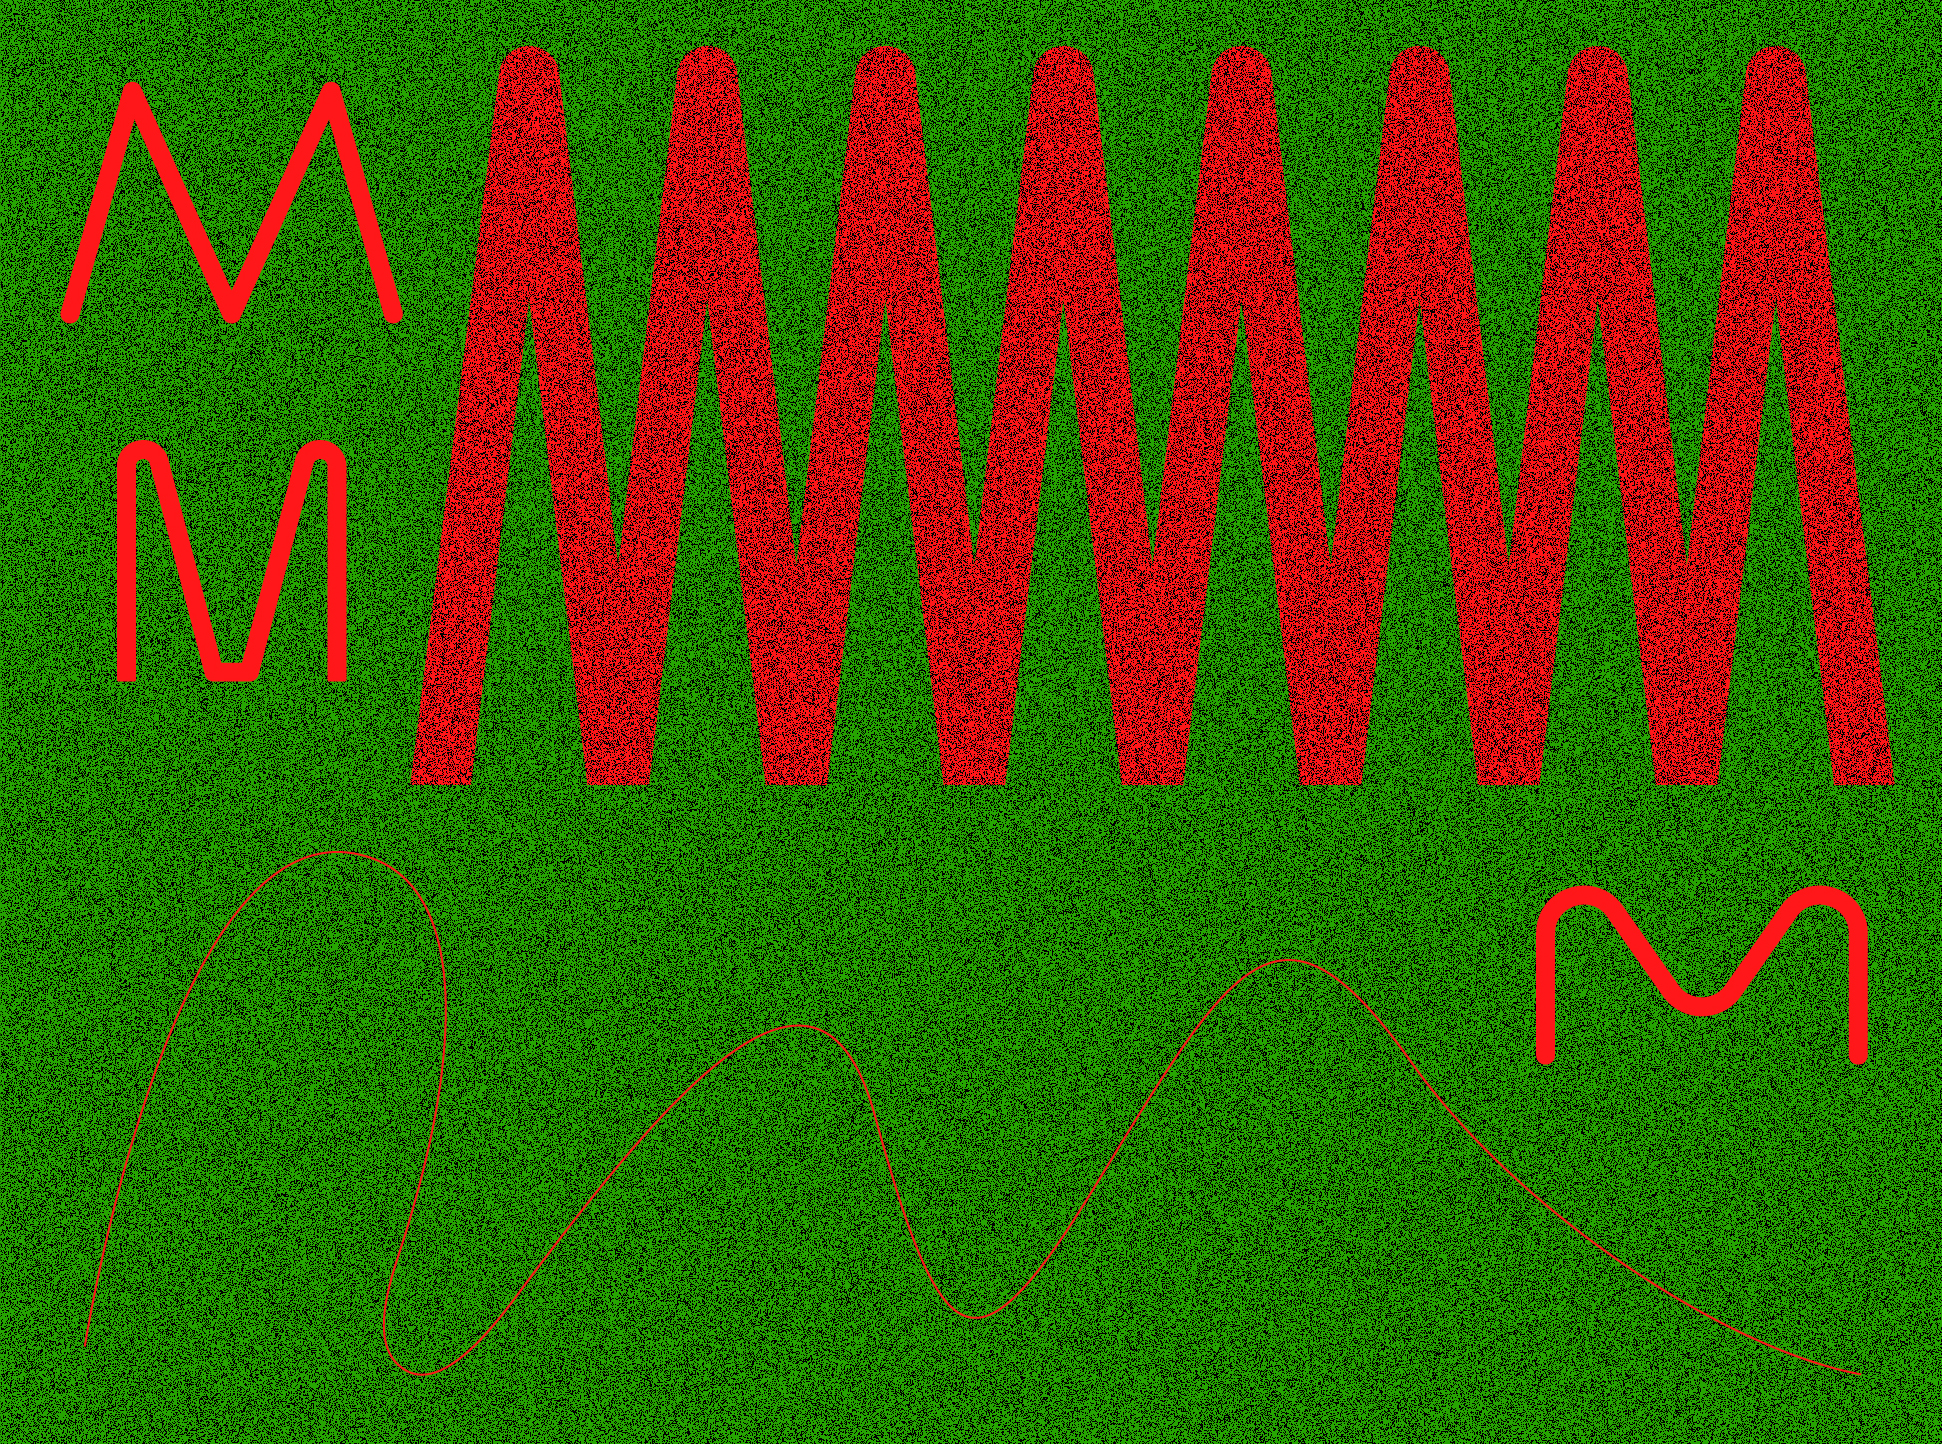 Red zig-zag pattern on green background